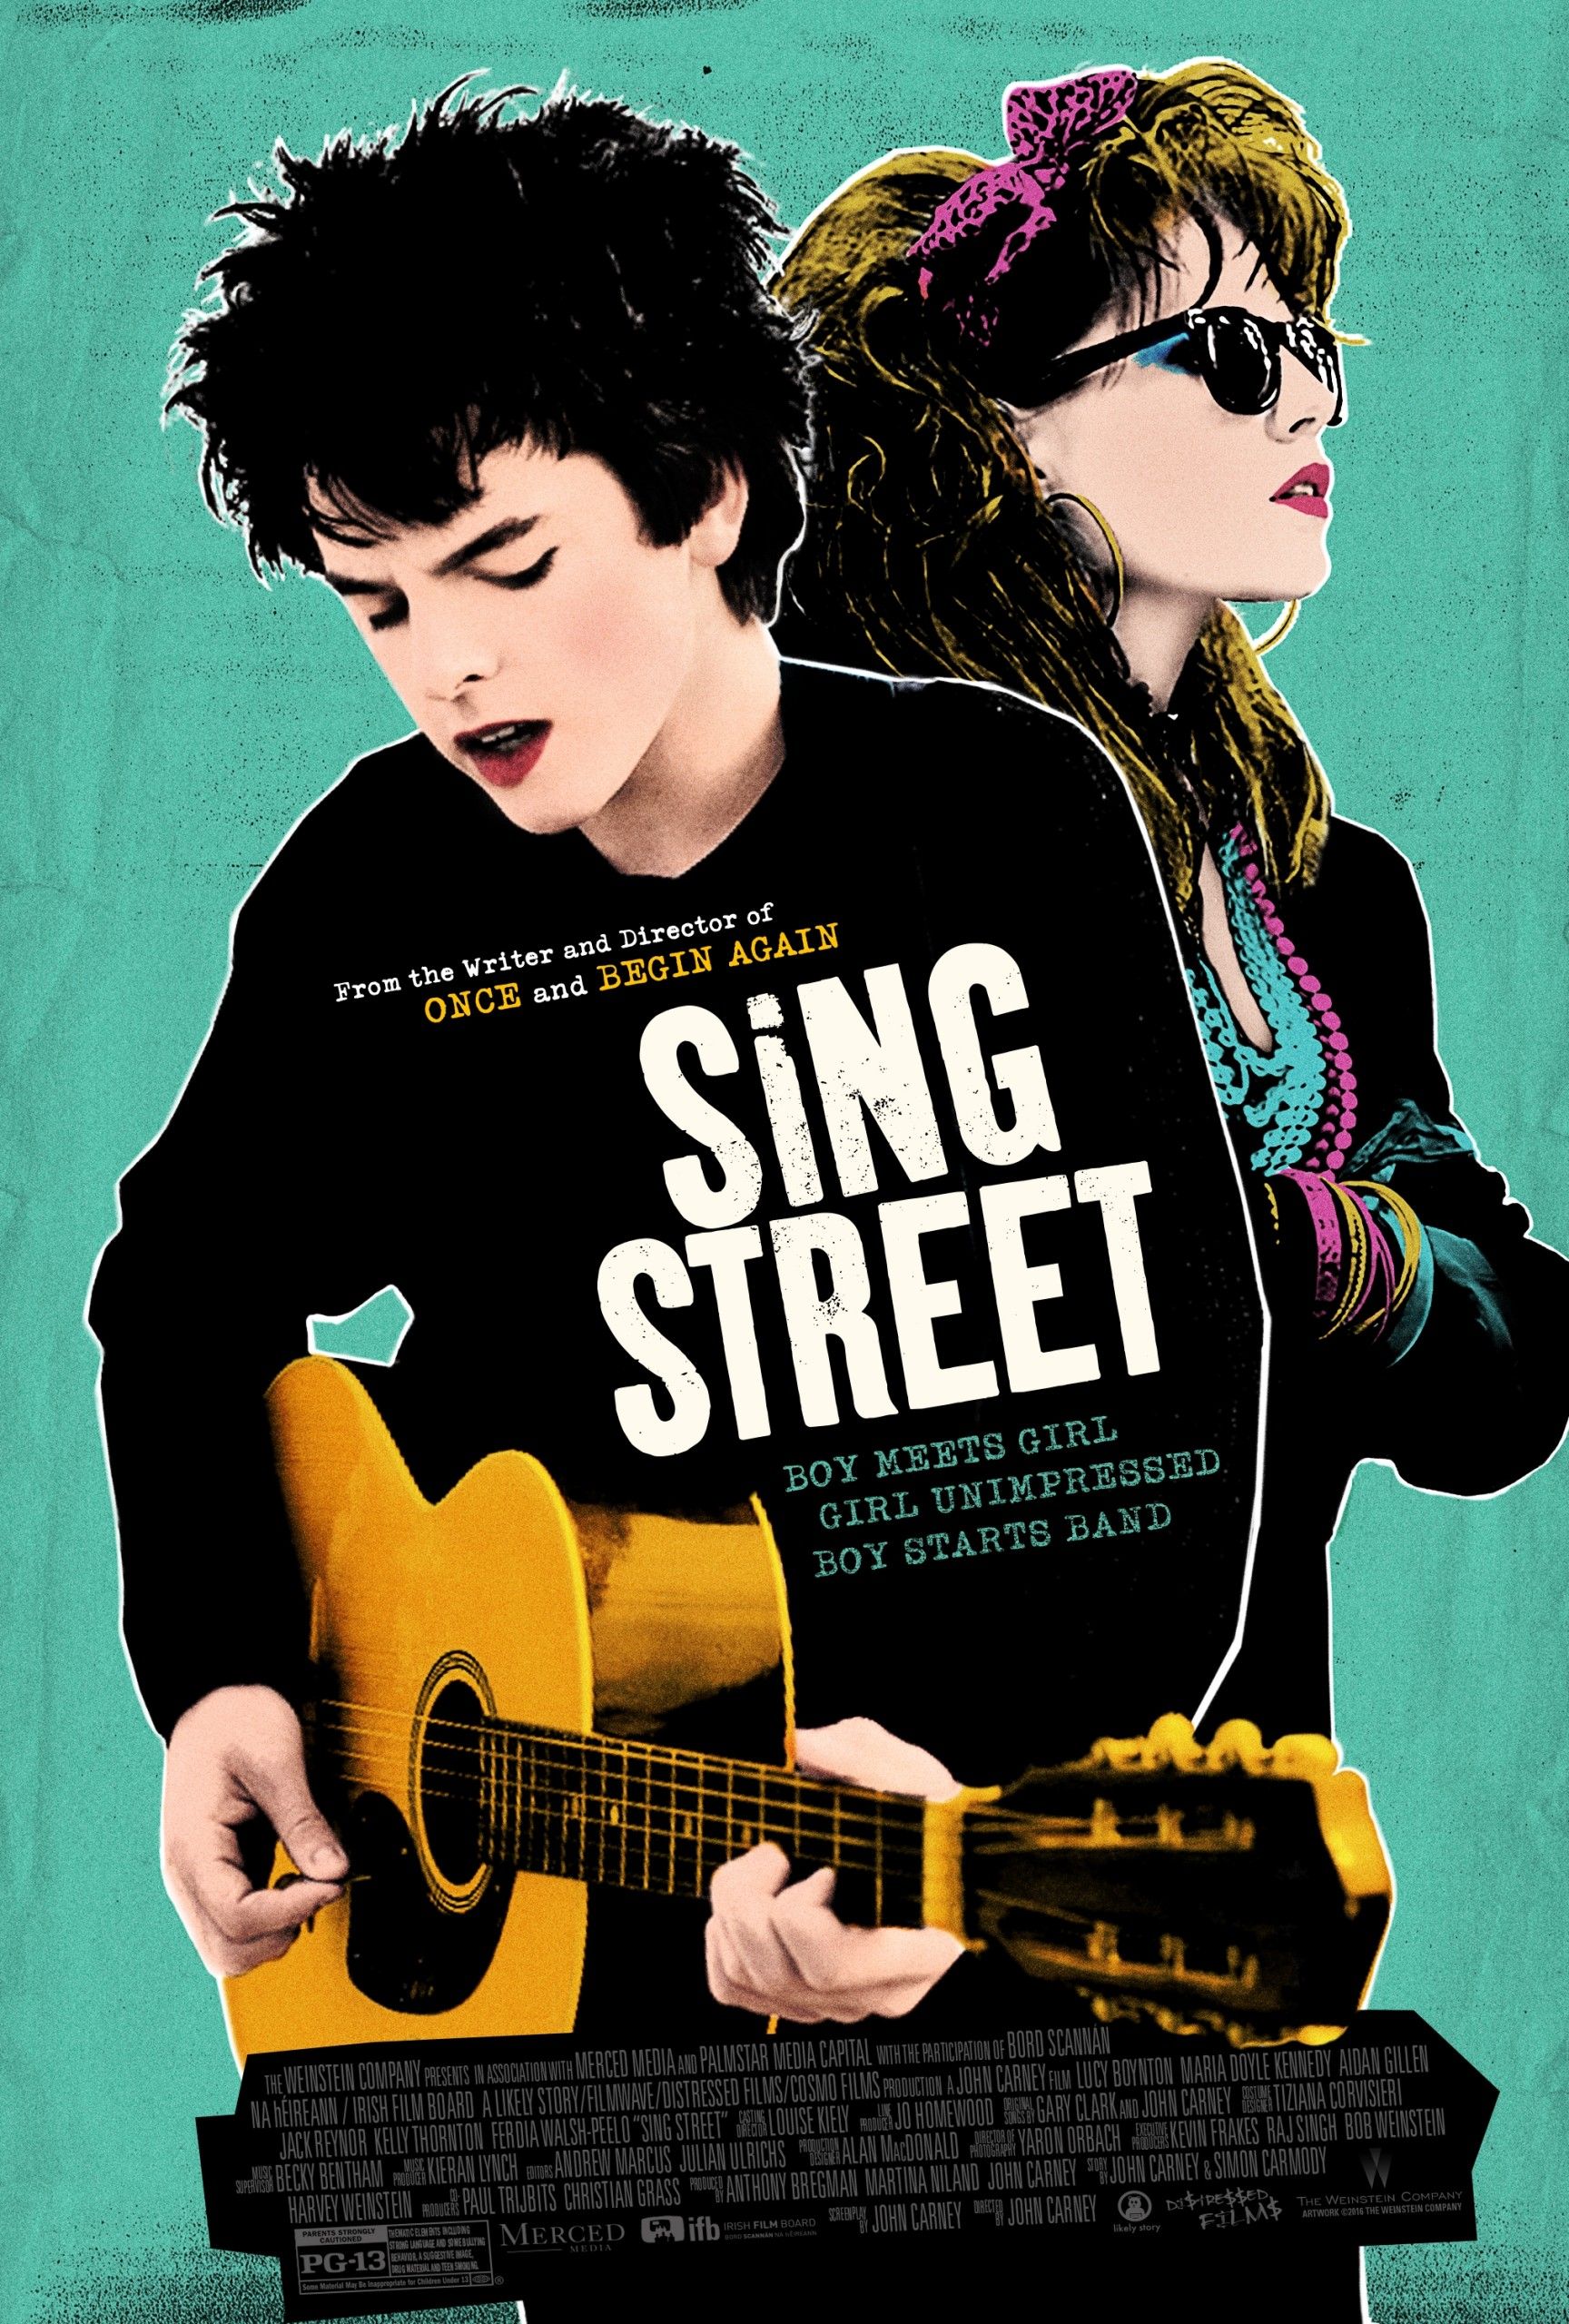 It's Free Movie Monday - 'Sing Street'